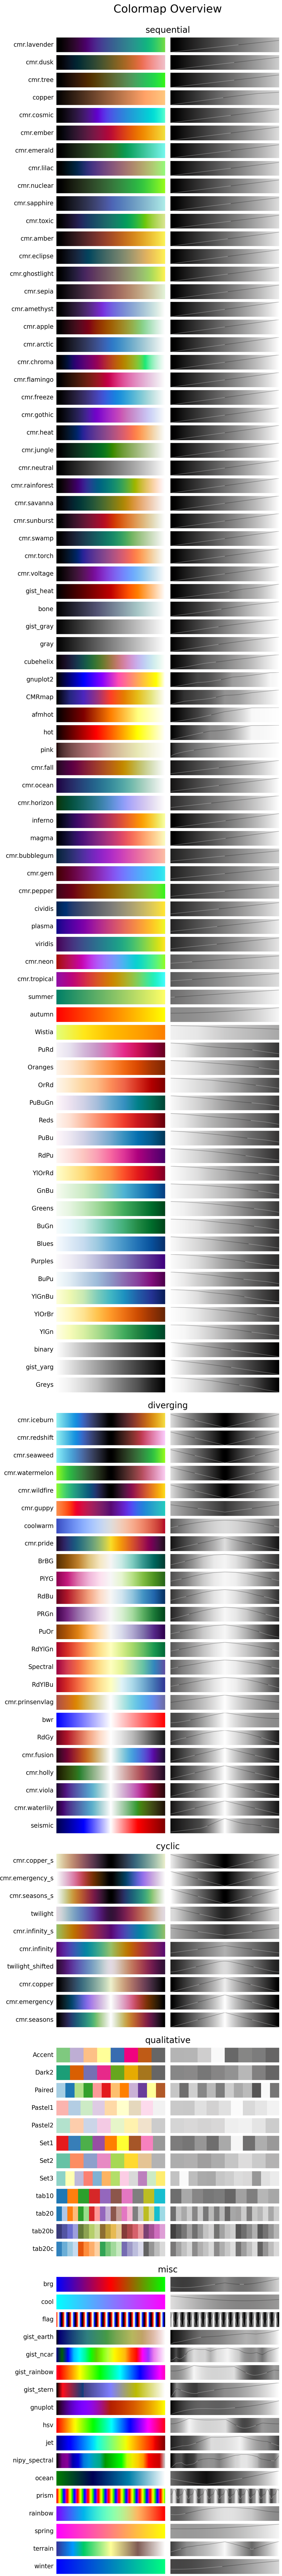 Colormap overview of all colormaps in *matplotlib* and *CMasher*.